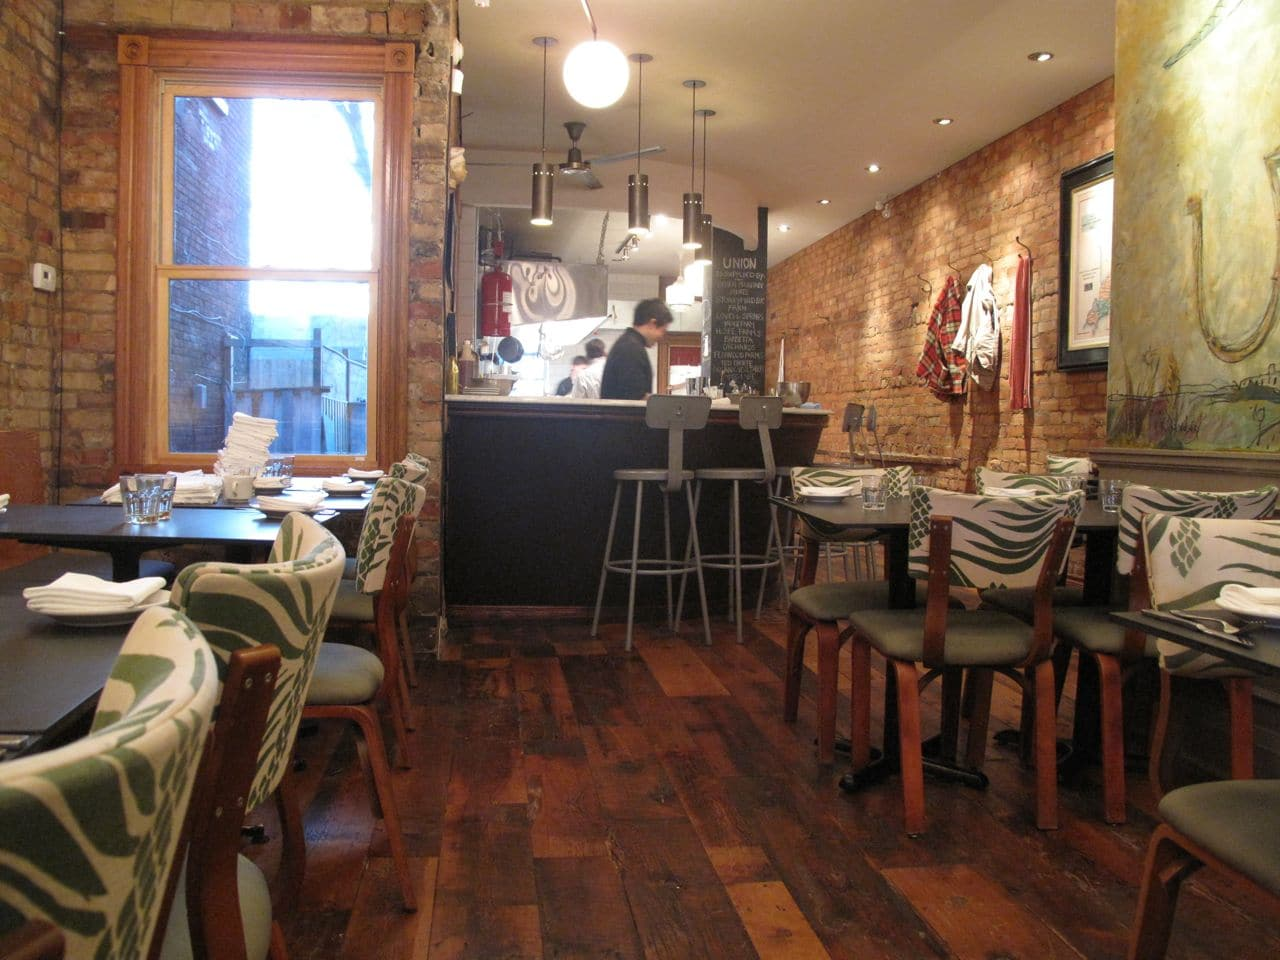 Ossington Restaurants: The dining room at Chef Leo Paul's Union.